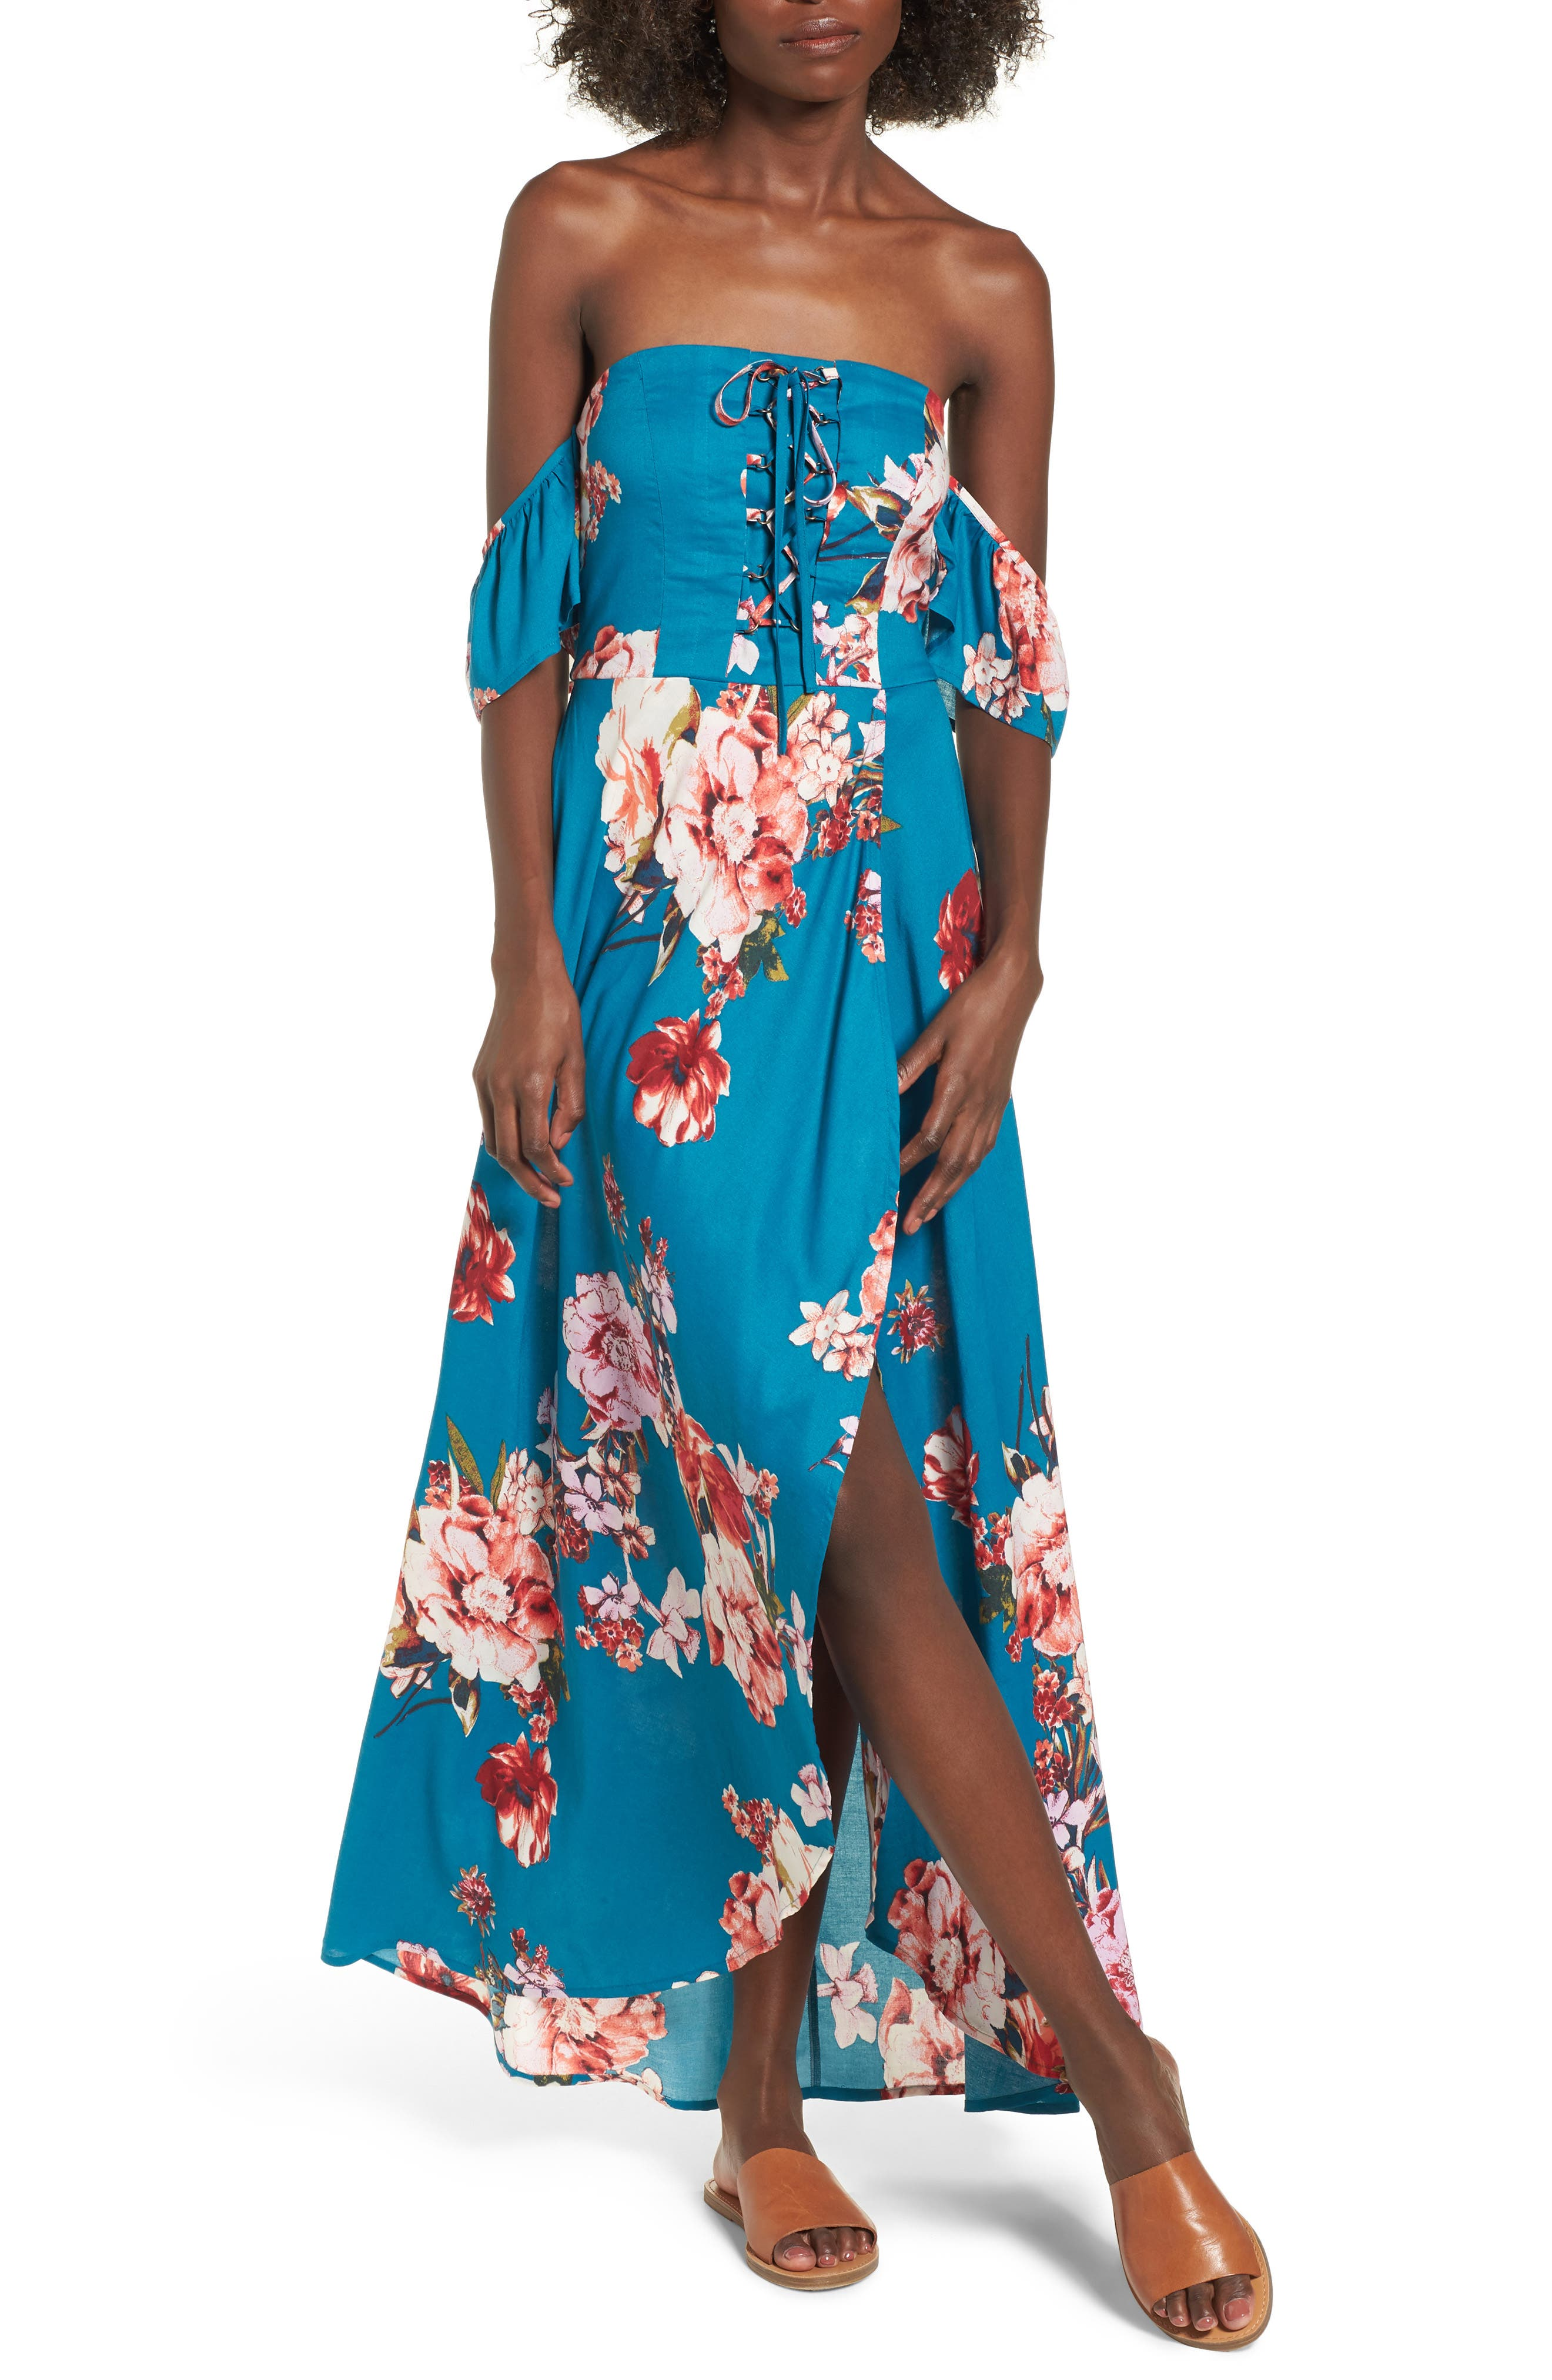 Band of Gypsies Lace Up Cold Shoulder Maxi Dress